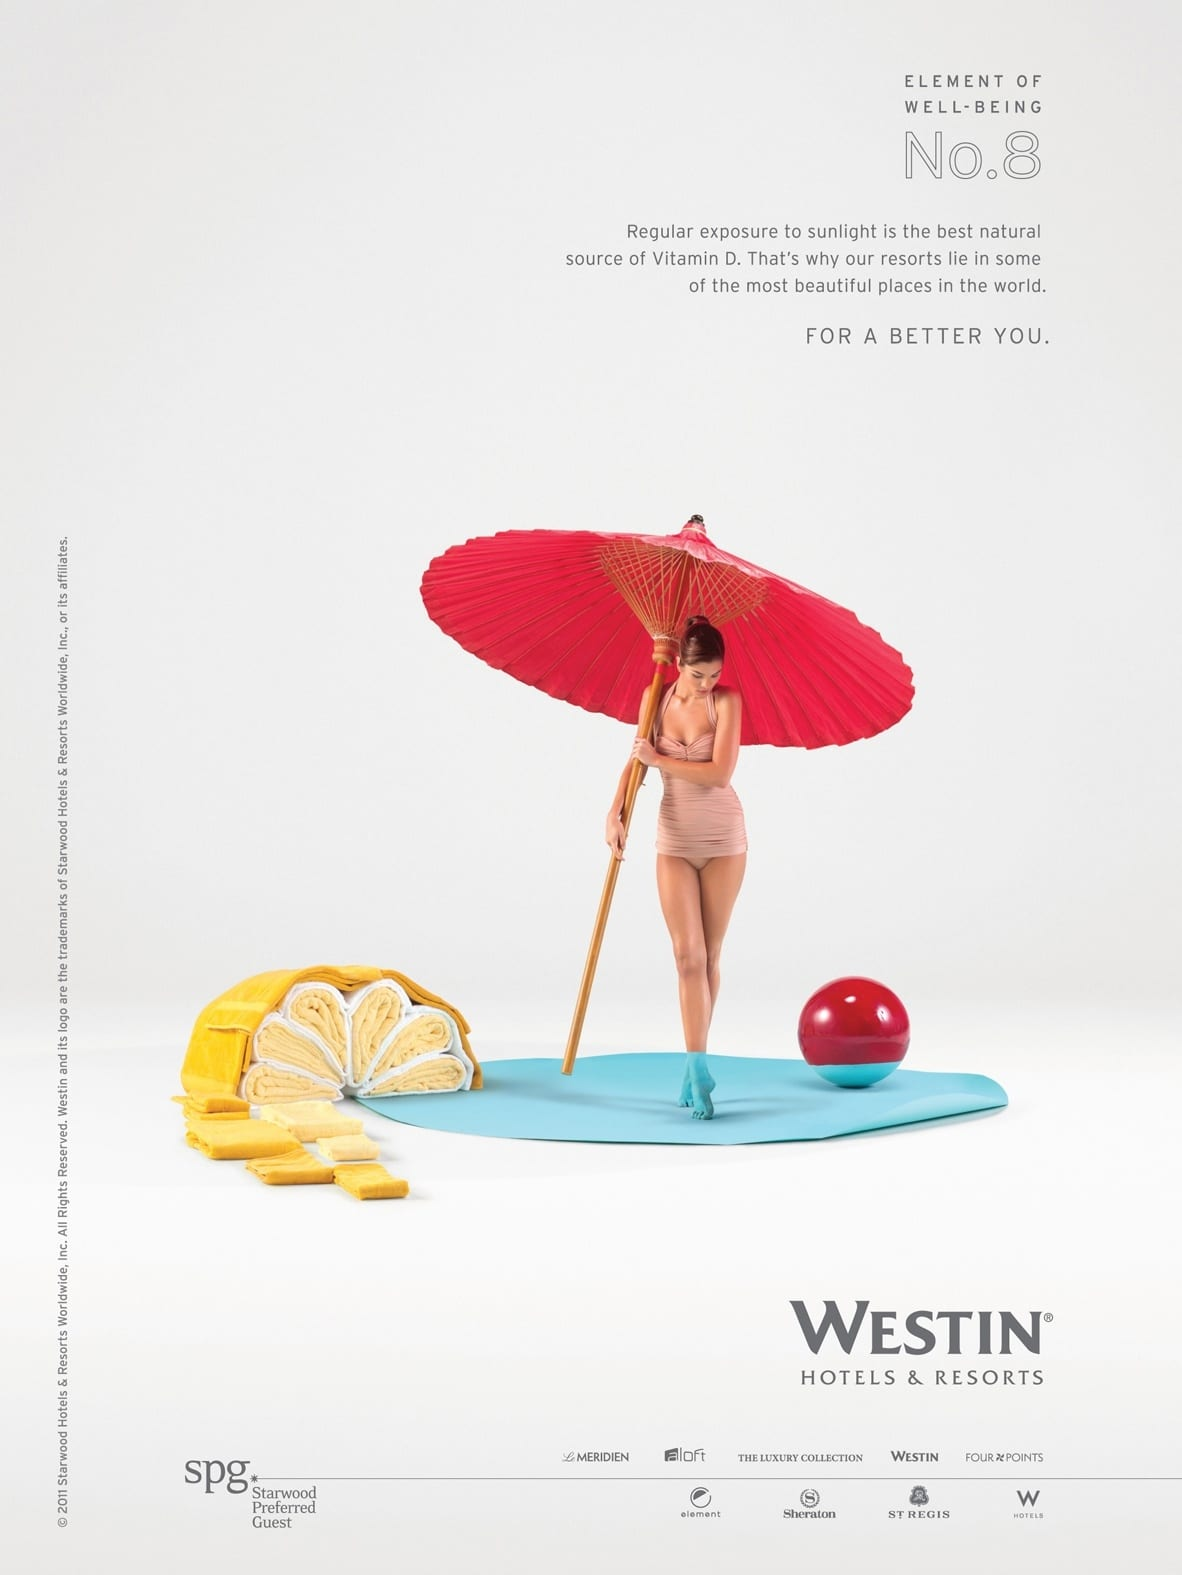 Westin Hotels - Elements of well being